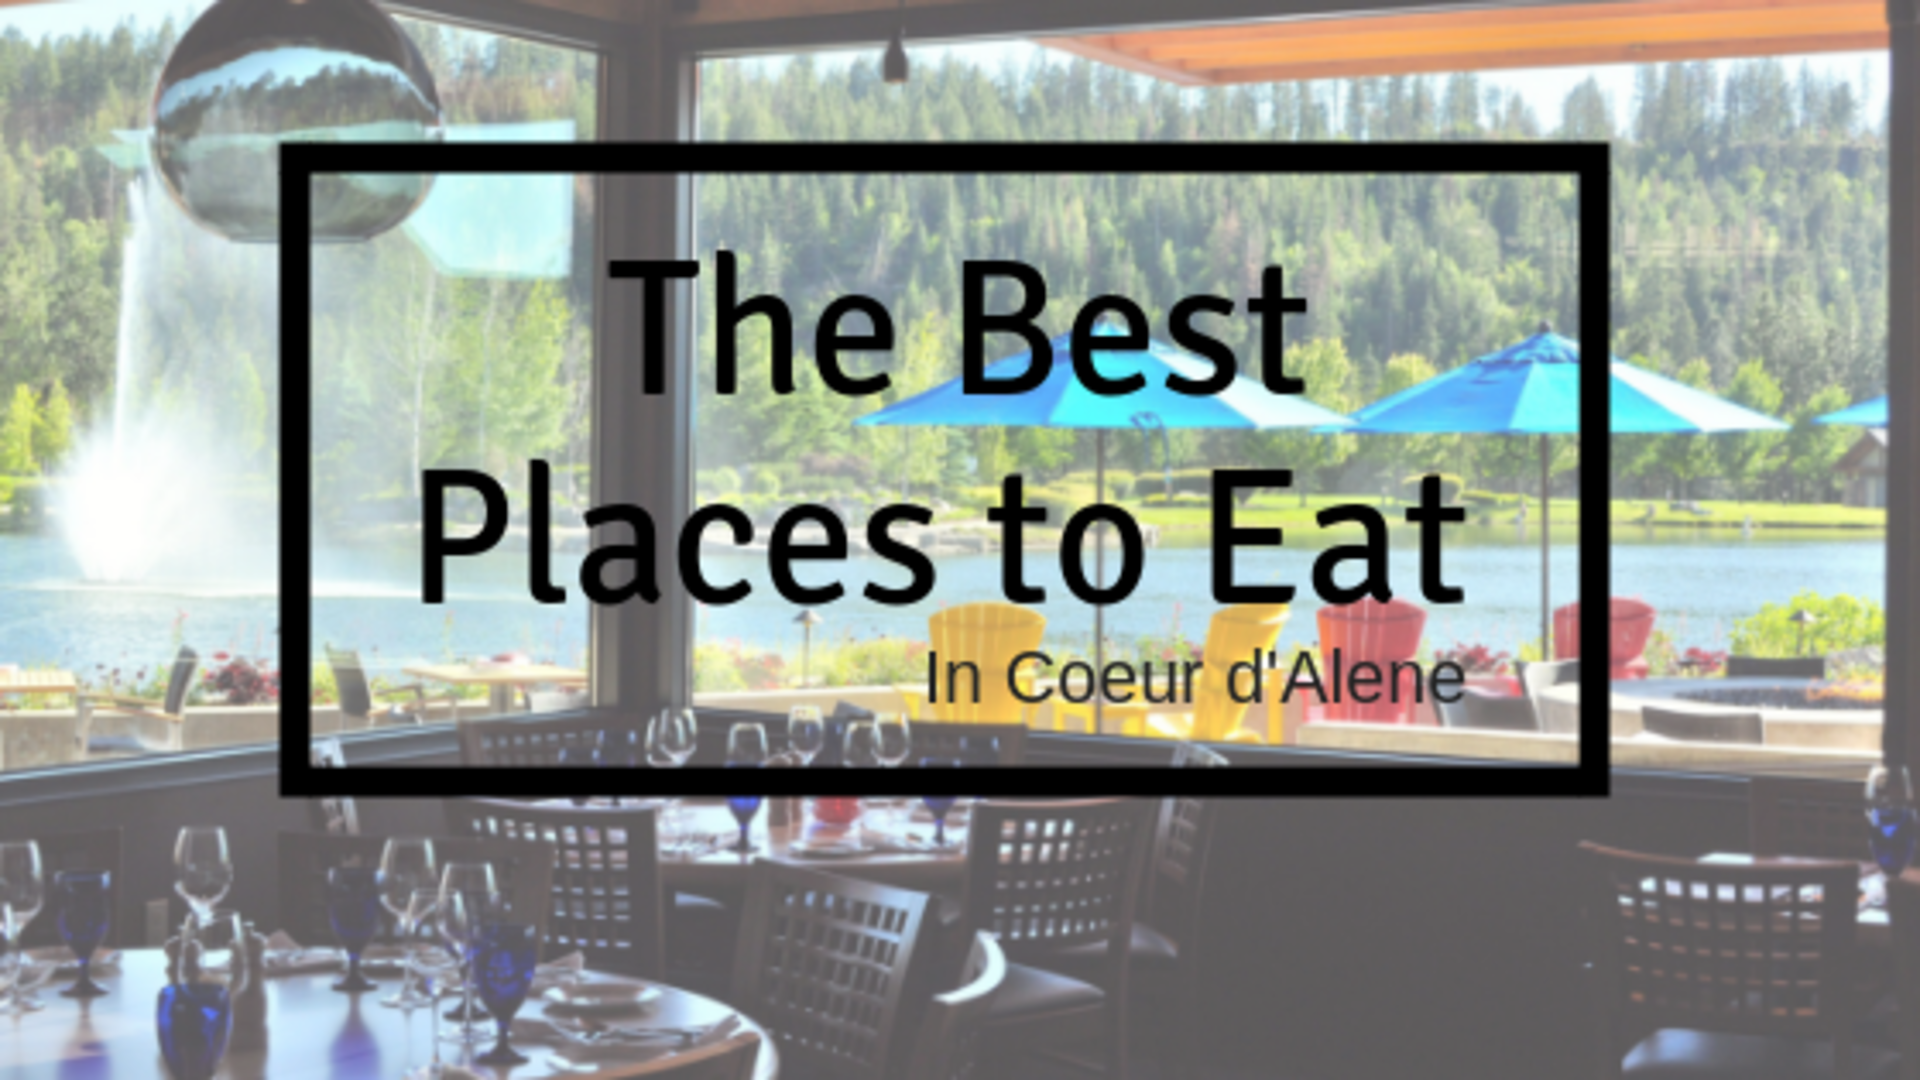 The Best Places to Eat in Coeur d'Alene